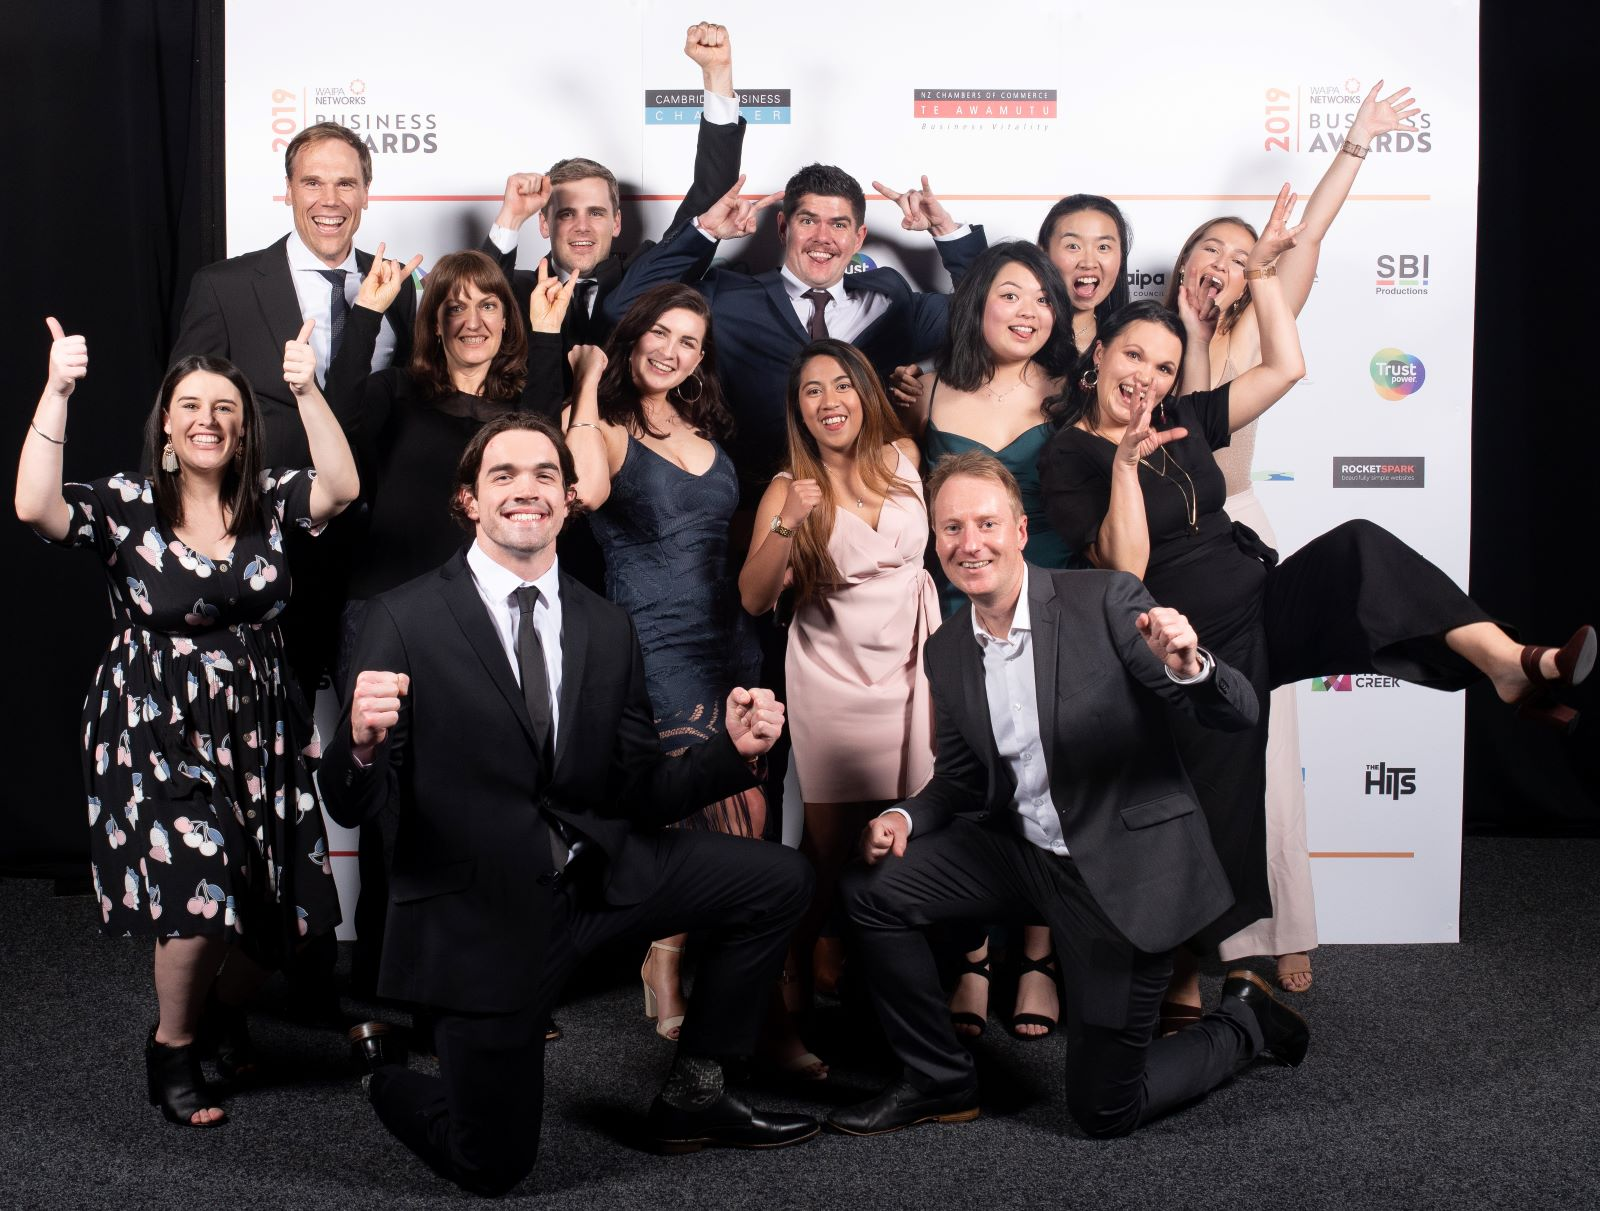 The Rocketspark team celebrating local business success at the 2019 Waipa Business Awards